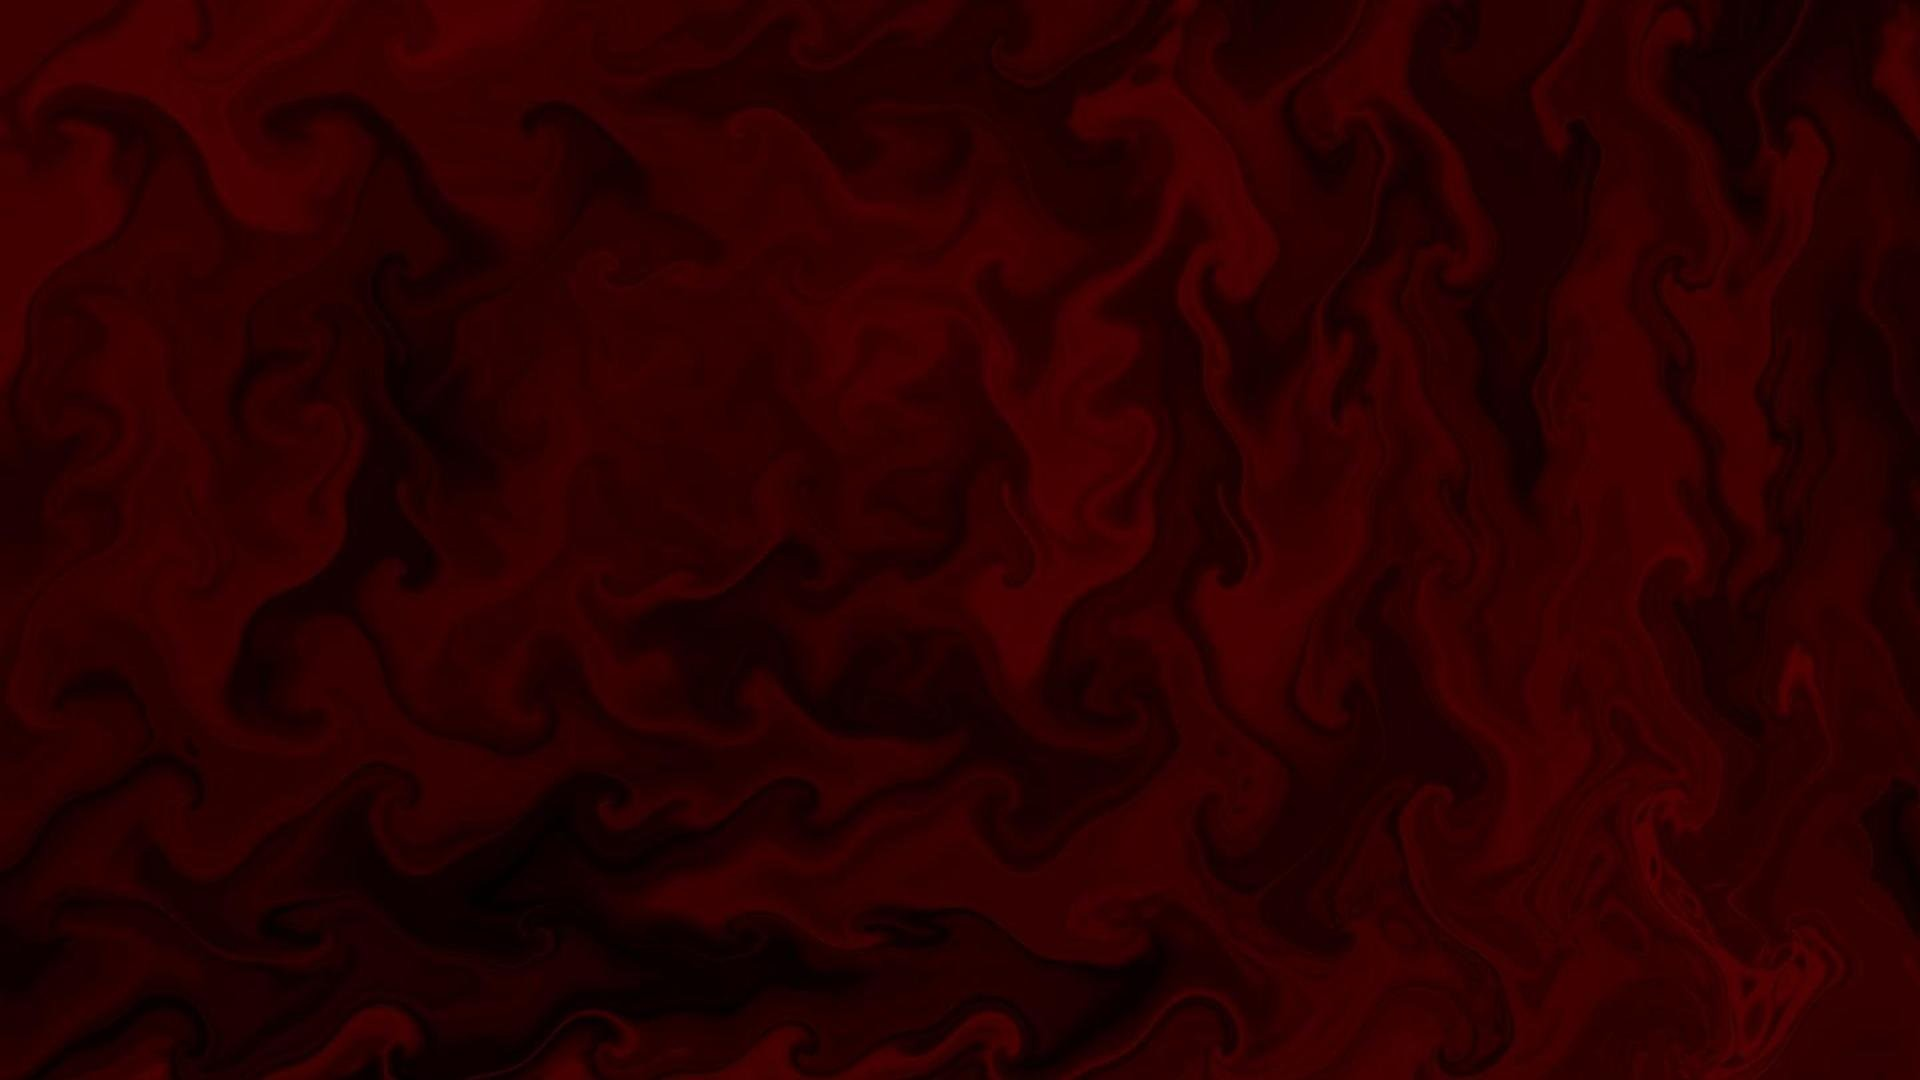 Red and black 4k wallpaper 53 images - Dark smoking wallpapers ...